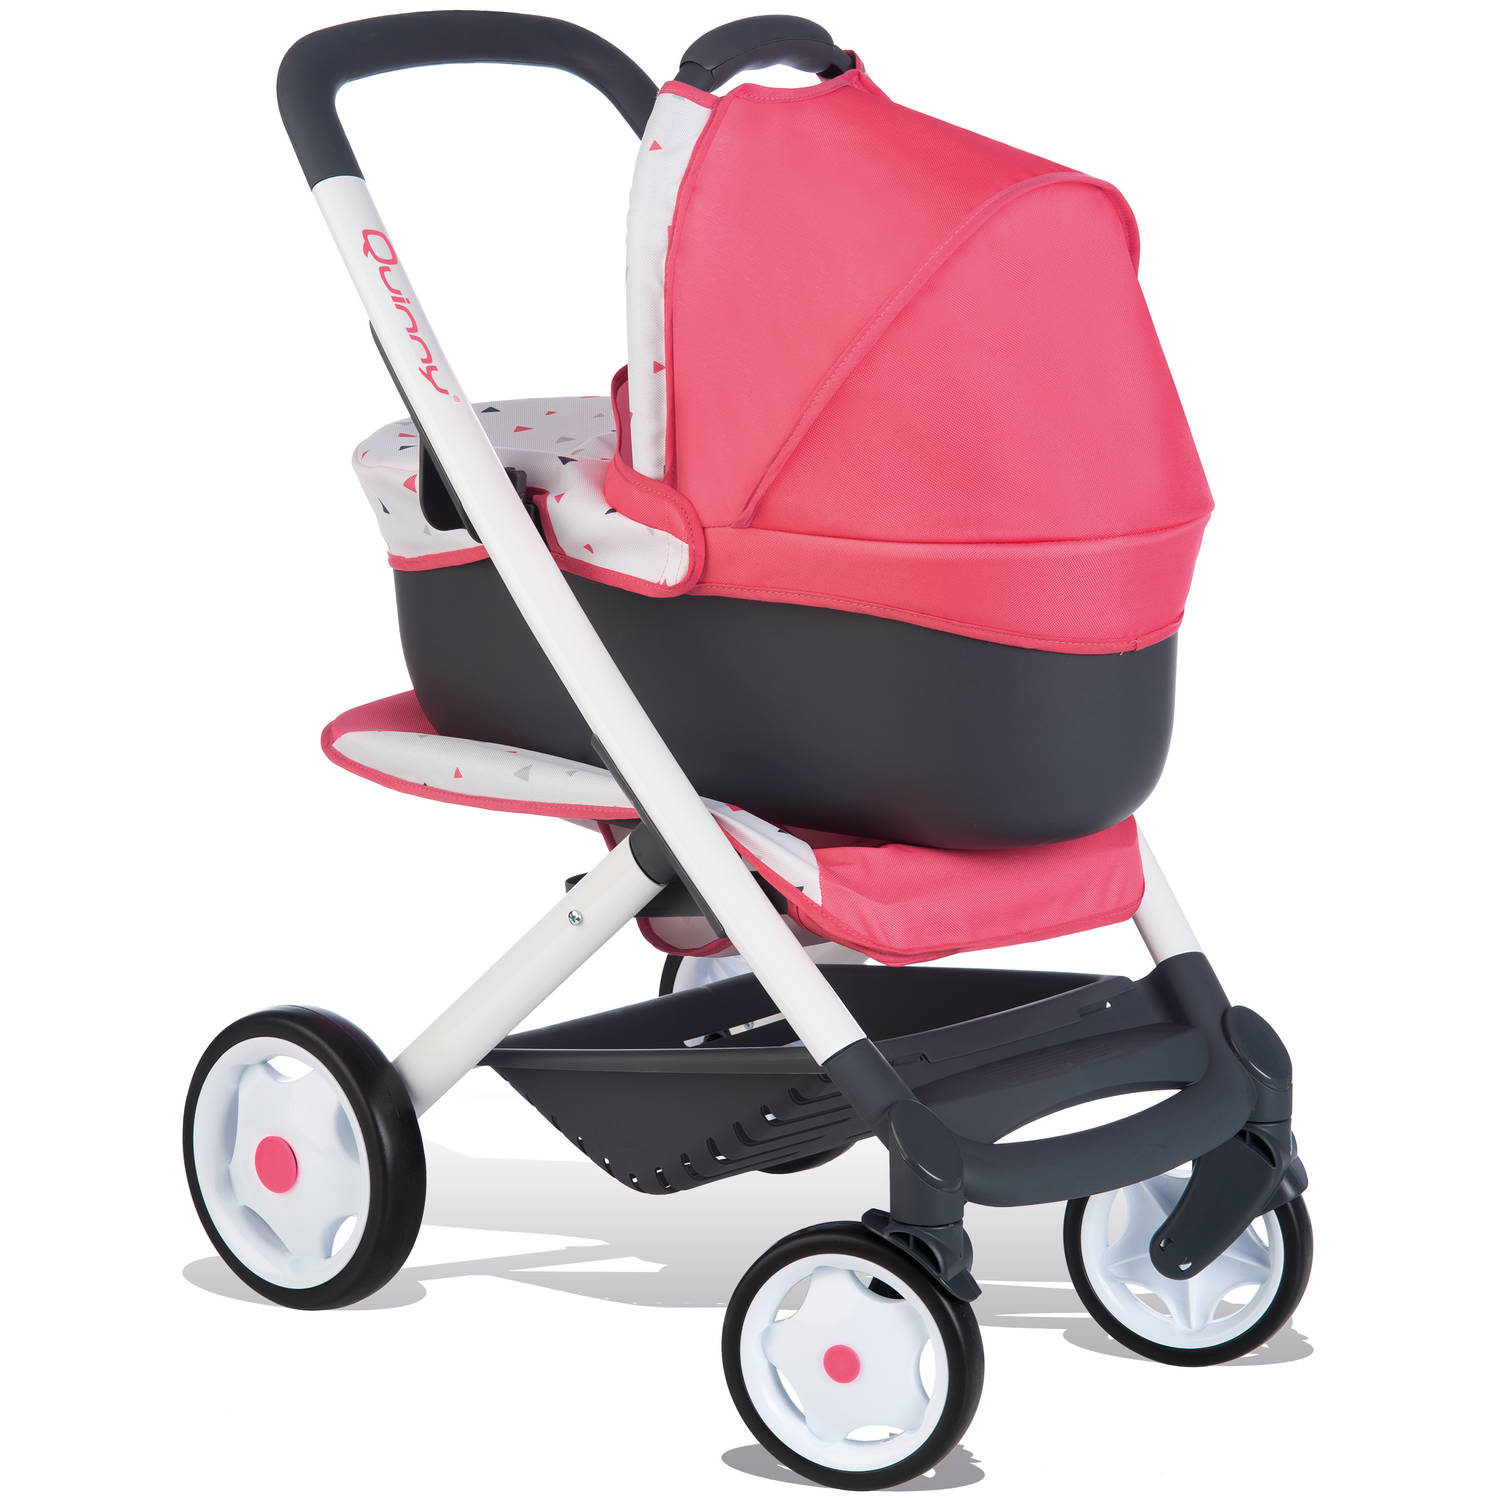 Korting Smoby Quinny 3 in 1 buggy